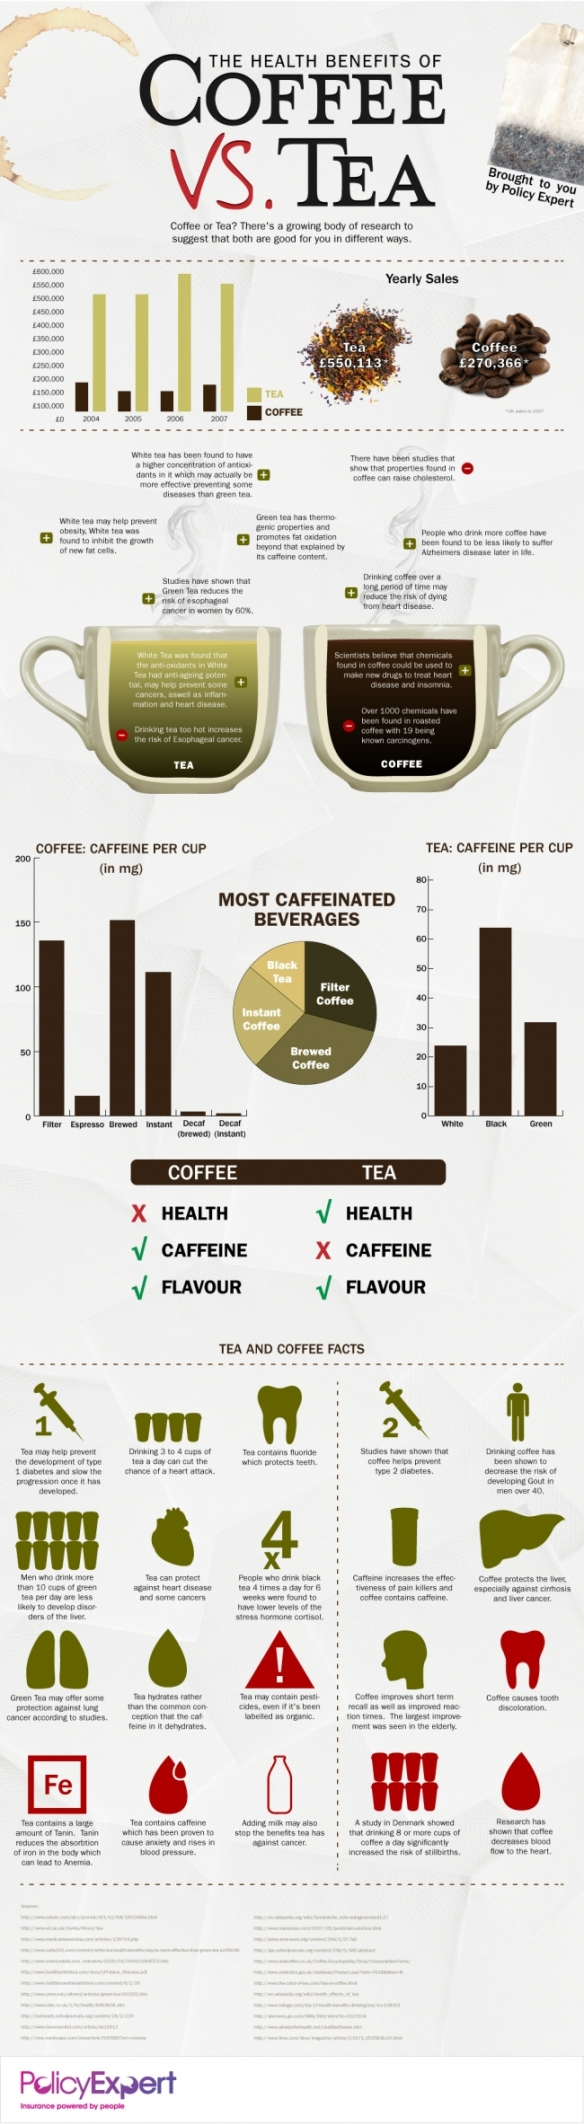 coffee versus tea infographic